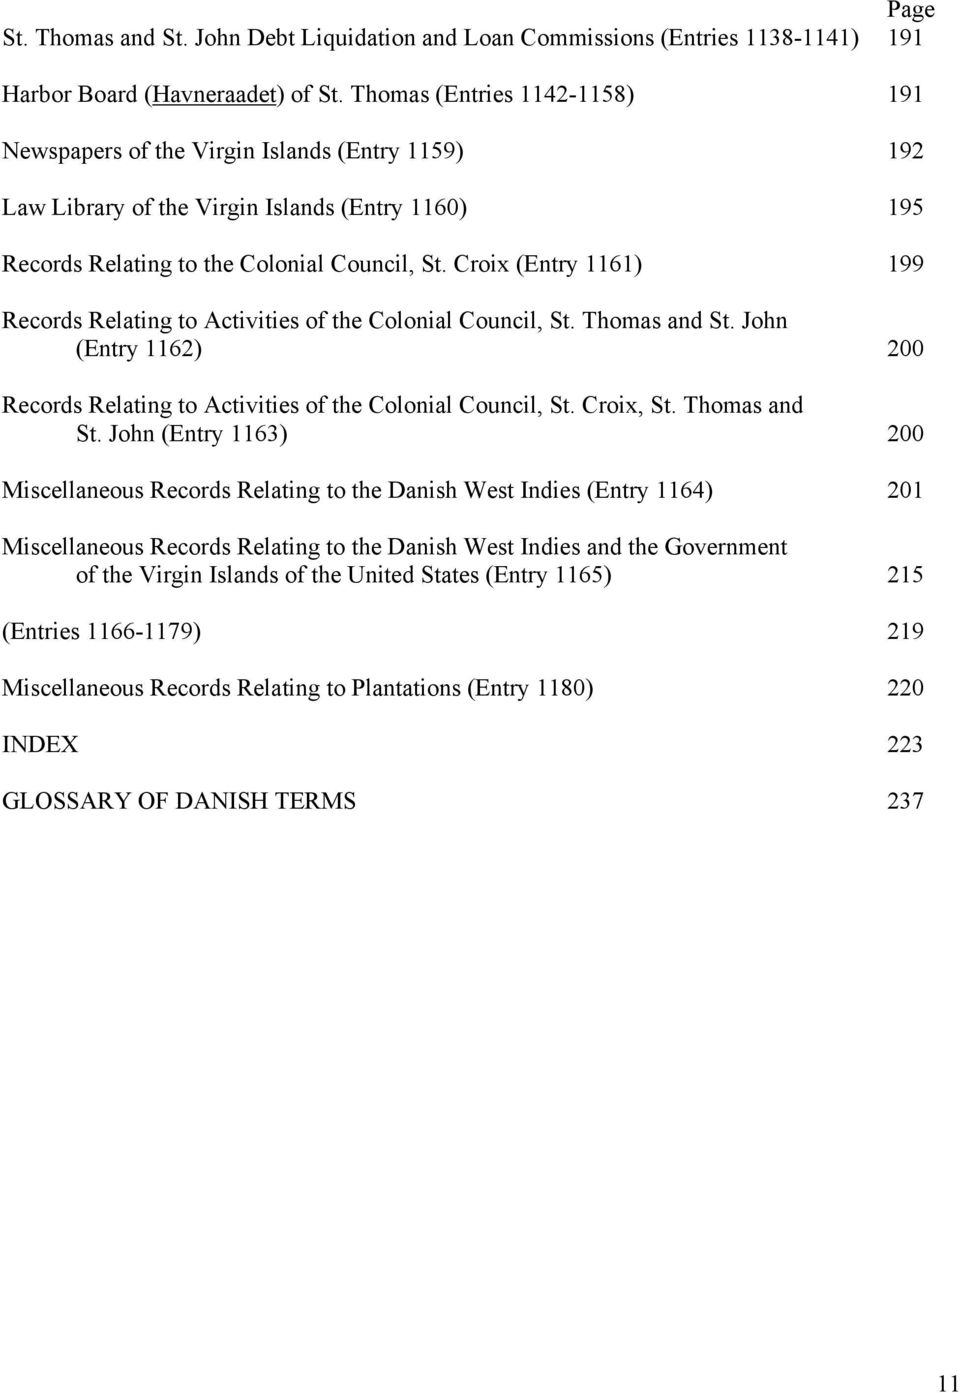 Croix (Entry 1161) 199 Records Relating to Activities of the Colonial Council, St. Thomas and St. John (Entry 1162) 200 Records Relating to Activities of the Colonial Council, St. Croix, St.